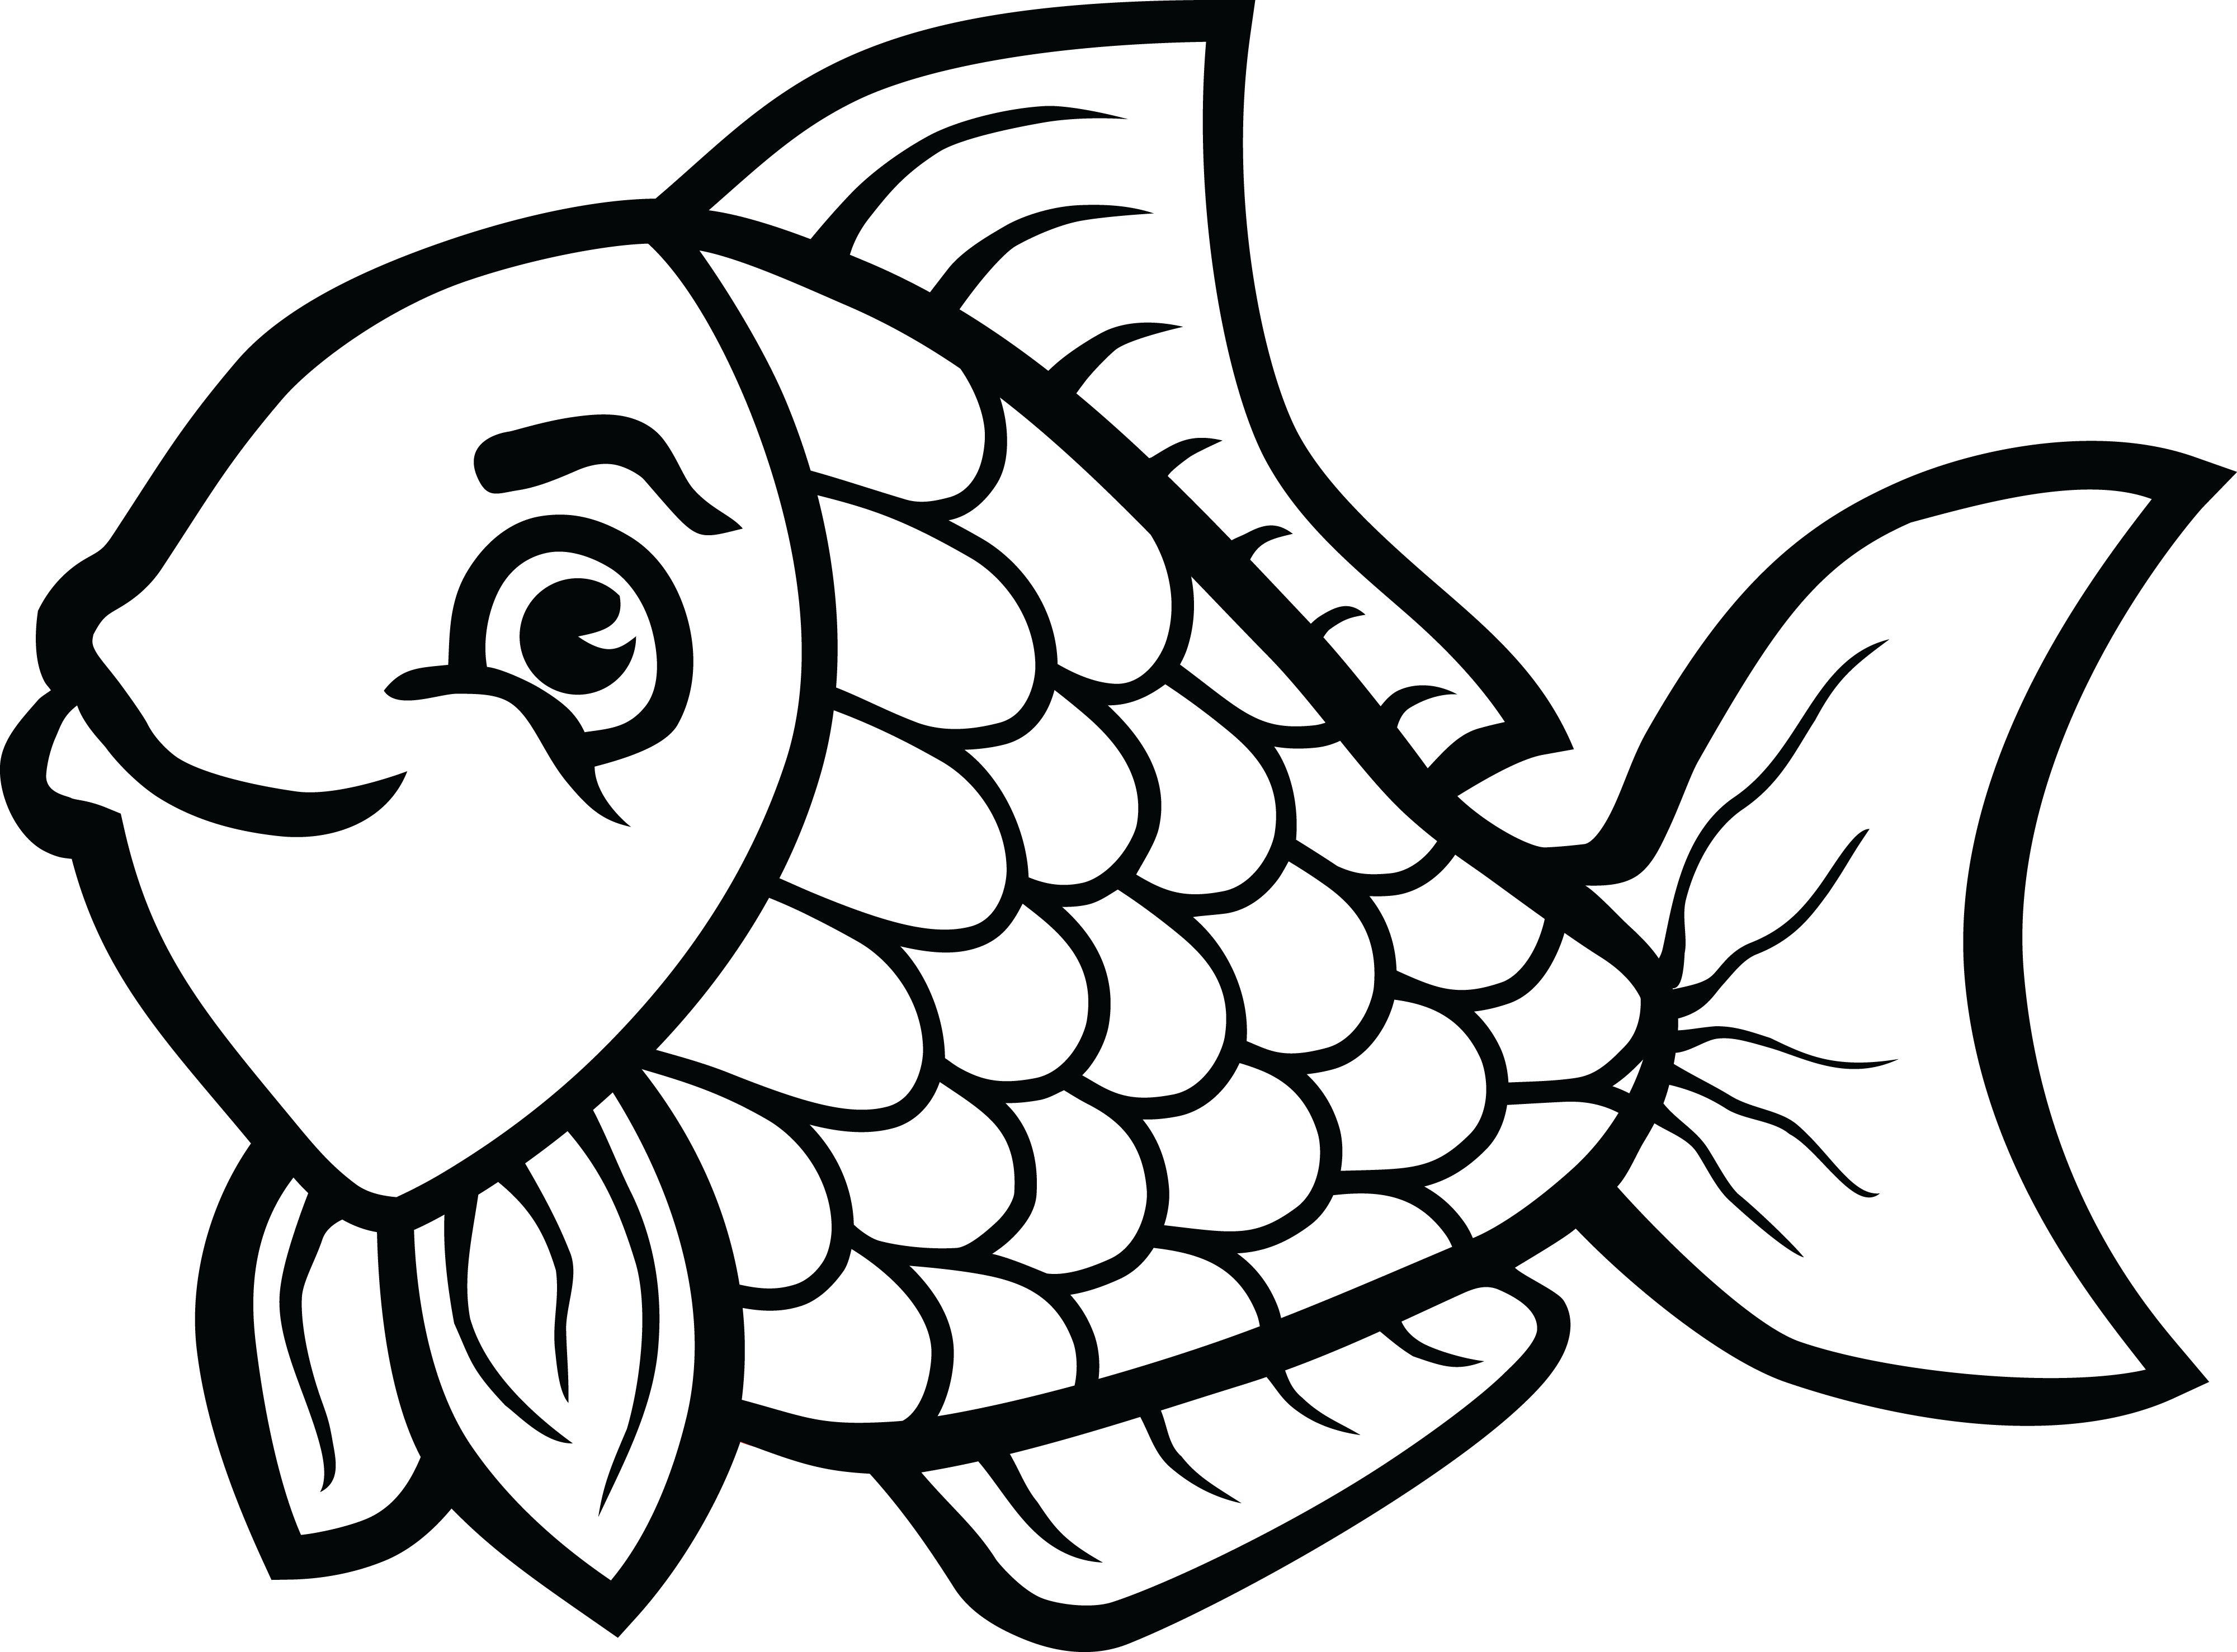 Fish cliparts black and white jpg black and white Fish Png Black And White & Free Fish Black And White.png Transparent ... jpg black and white